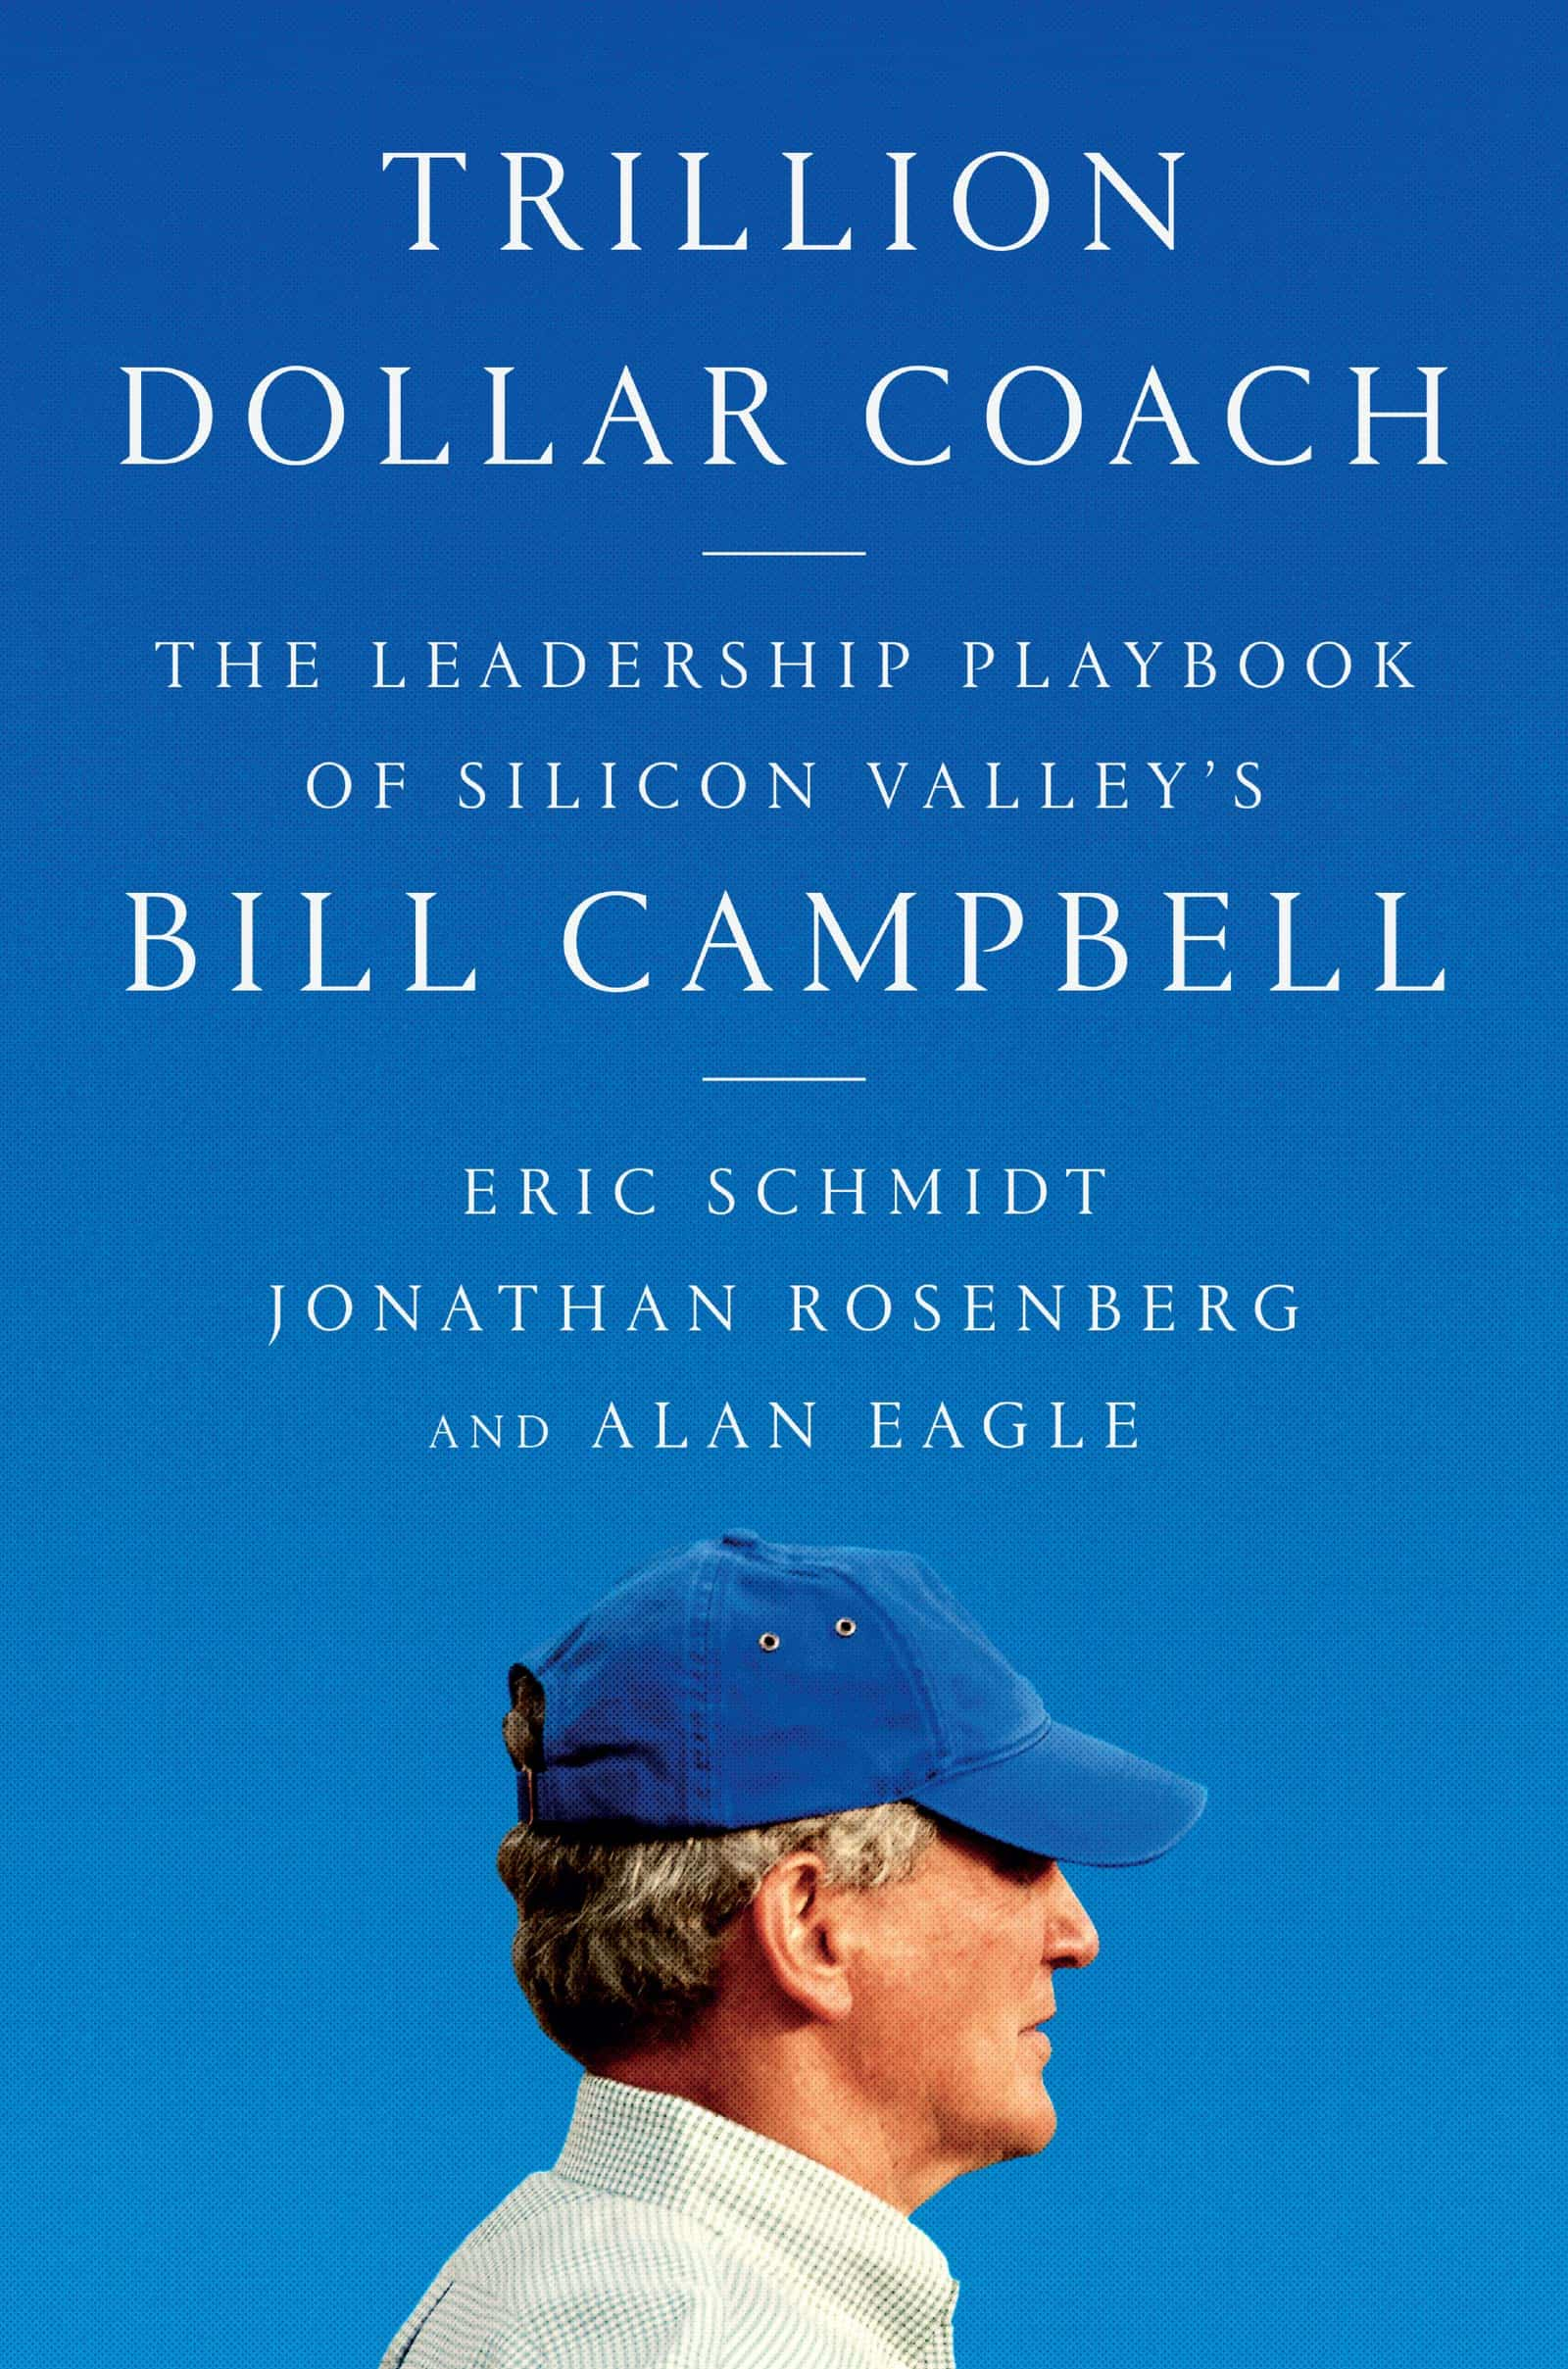 The cover of Trillion Dollar Coach